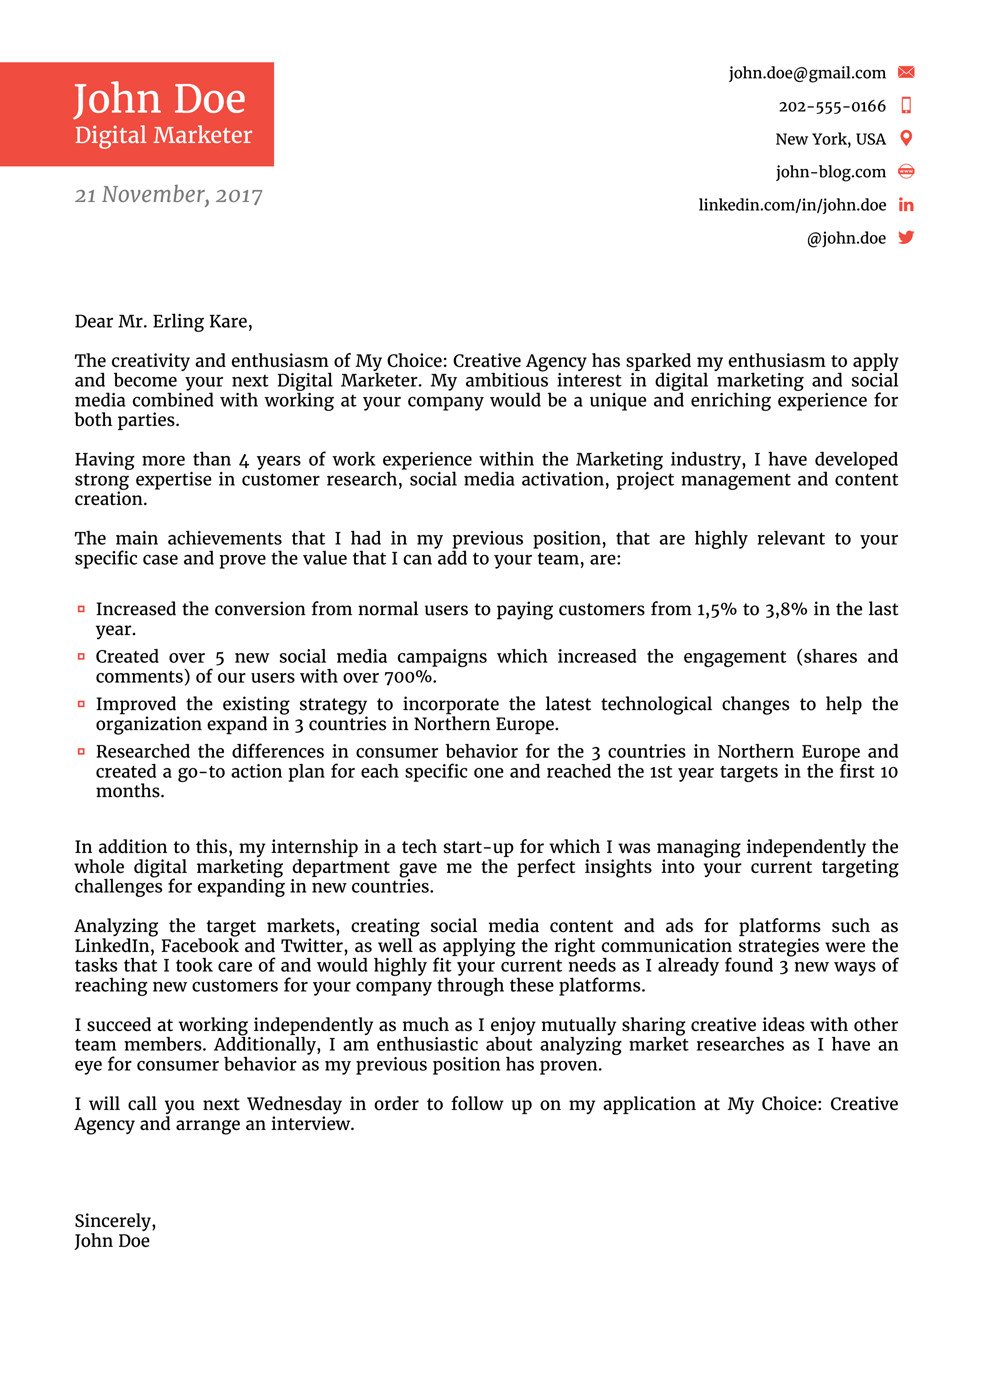 Best Cover Letter Template 8 Cover Letter Templates for 2019 [that Hr Will Love ]